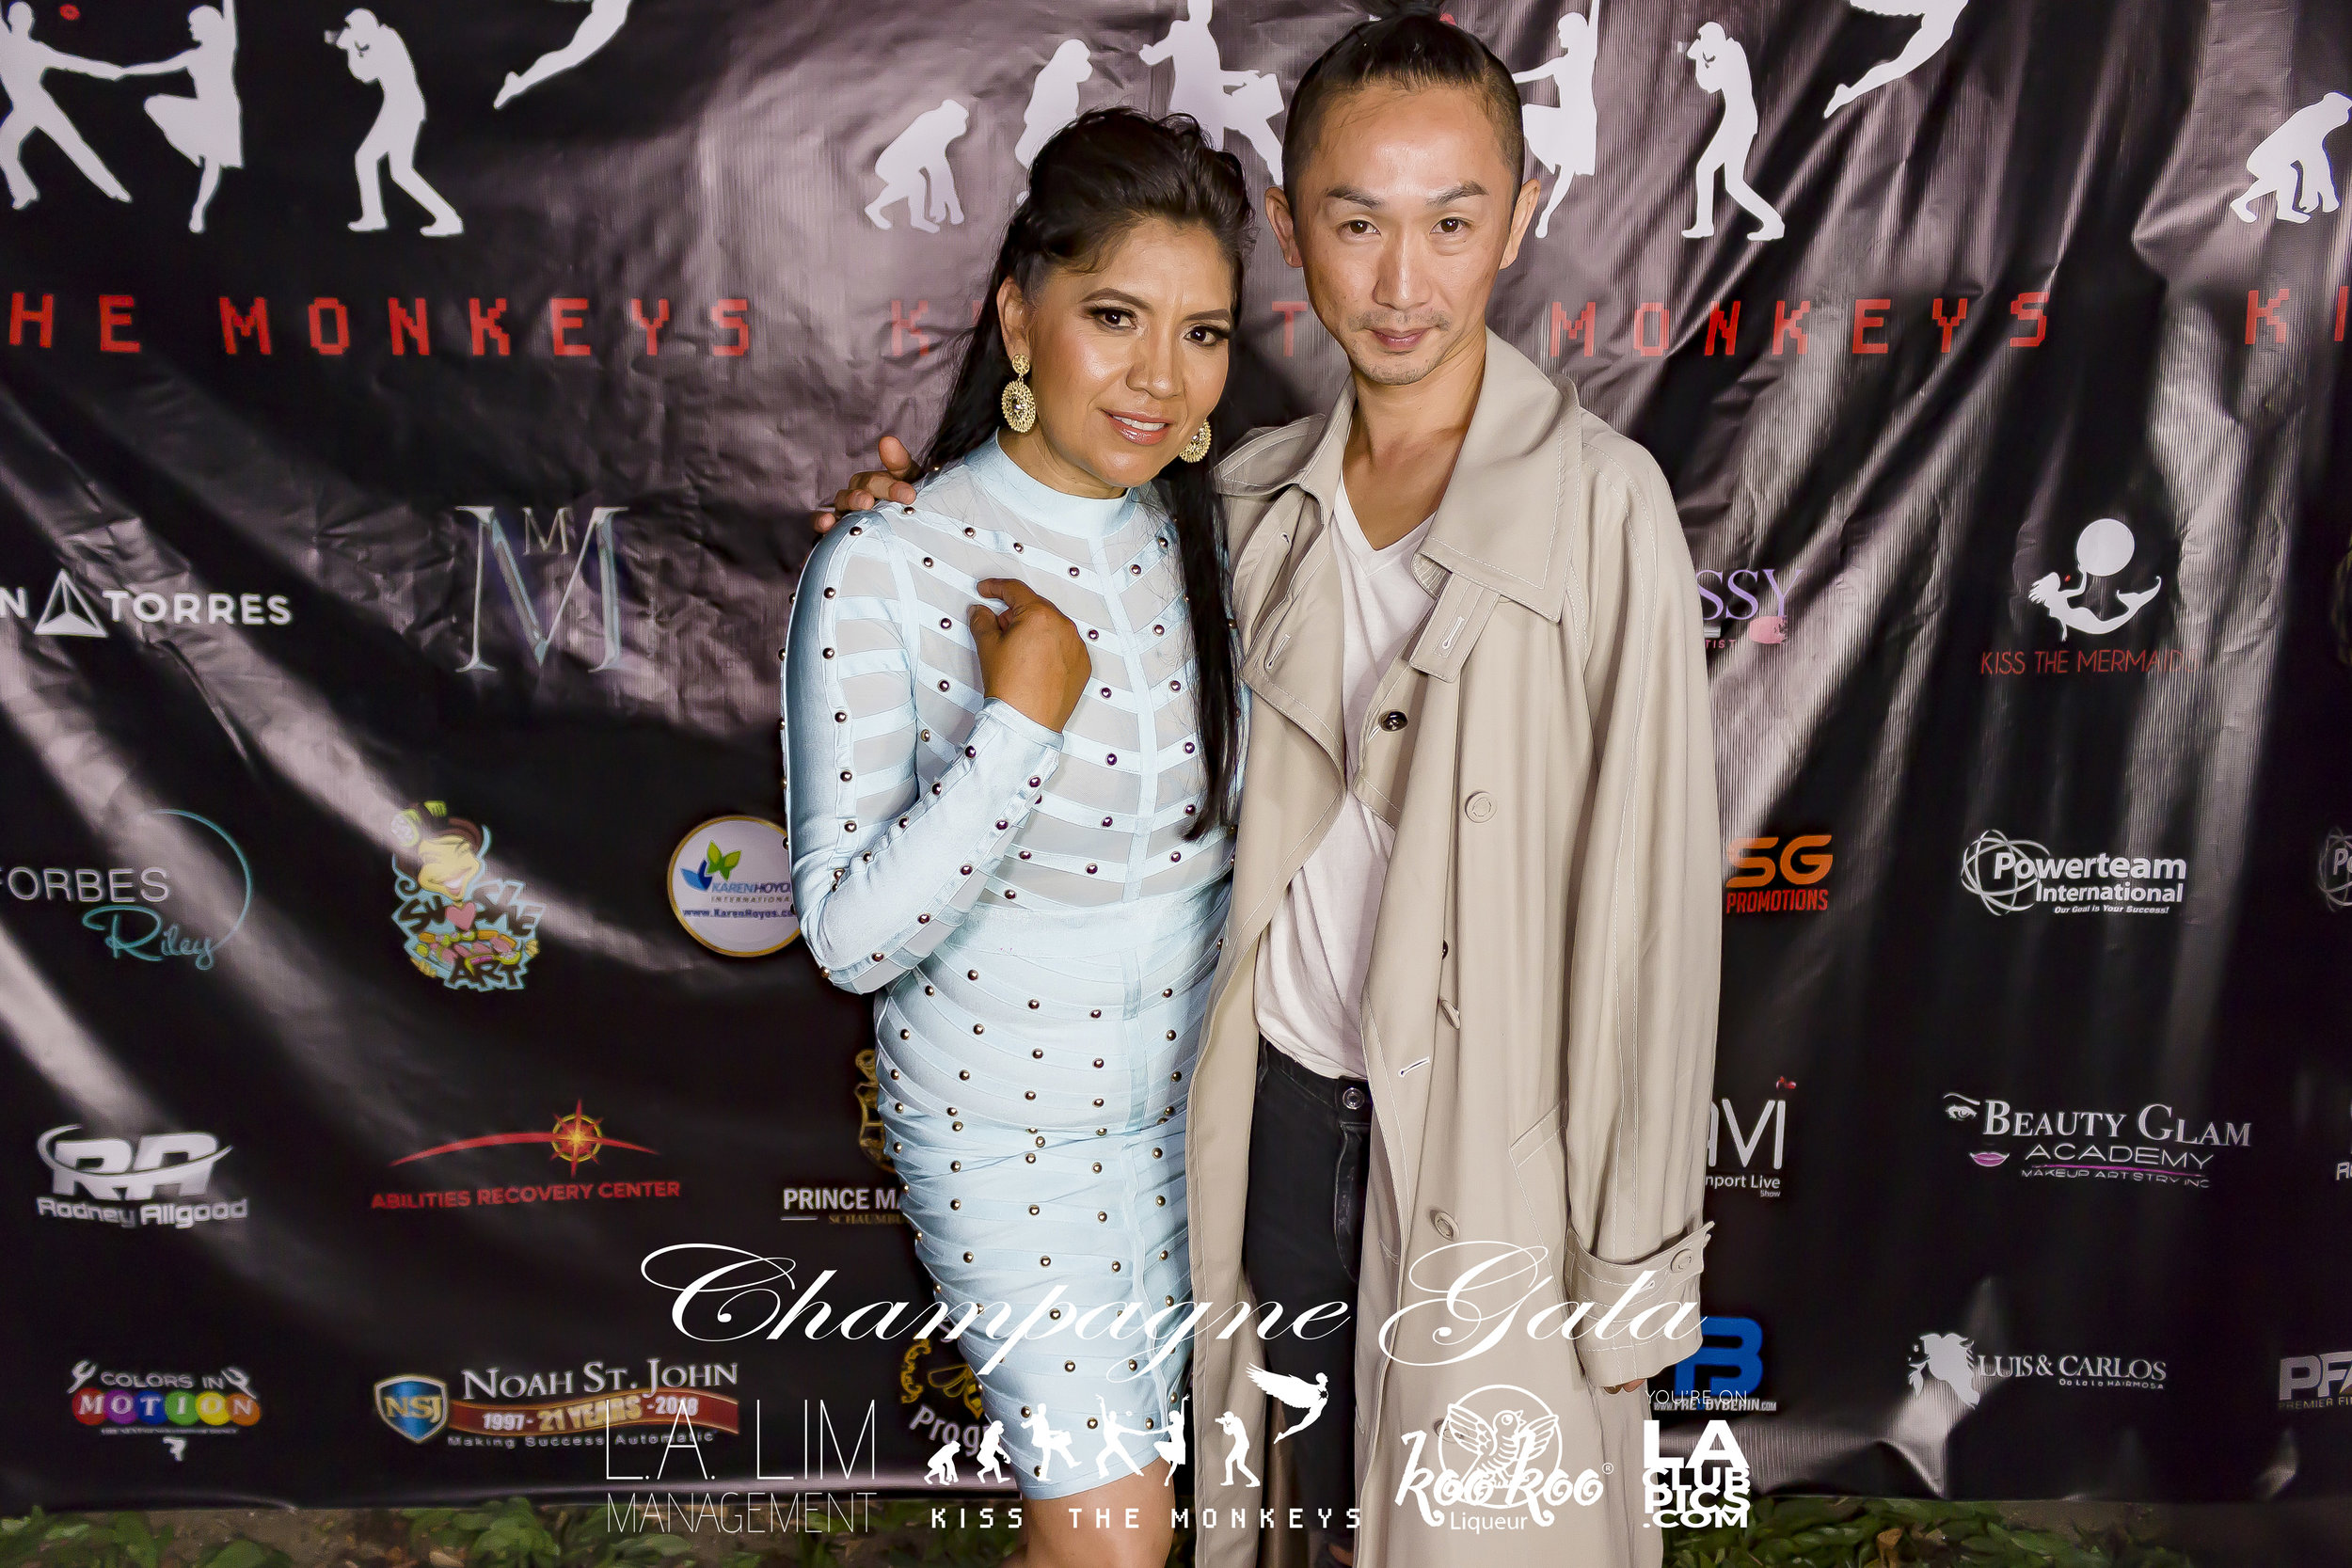 Kiss The Monkeys - Champagne Gala - 07-21-18_29.jpg